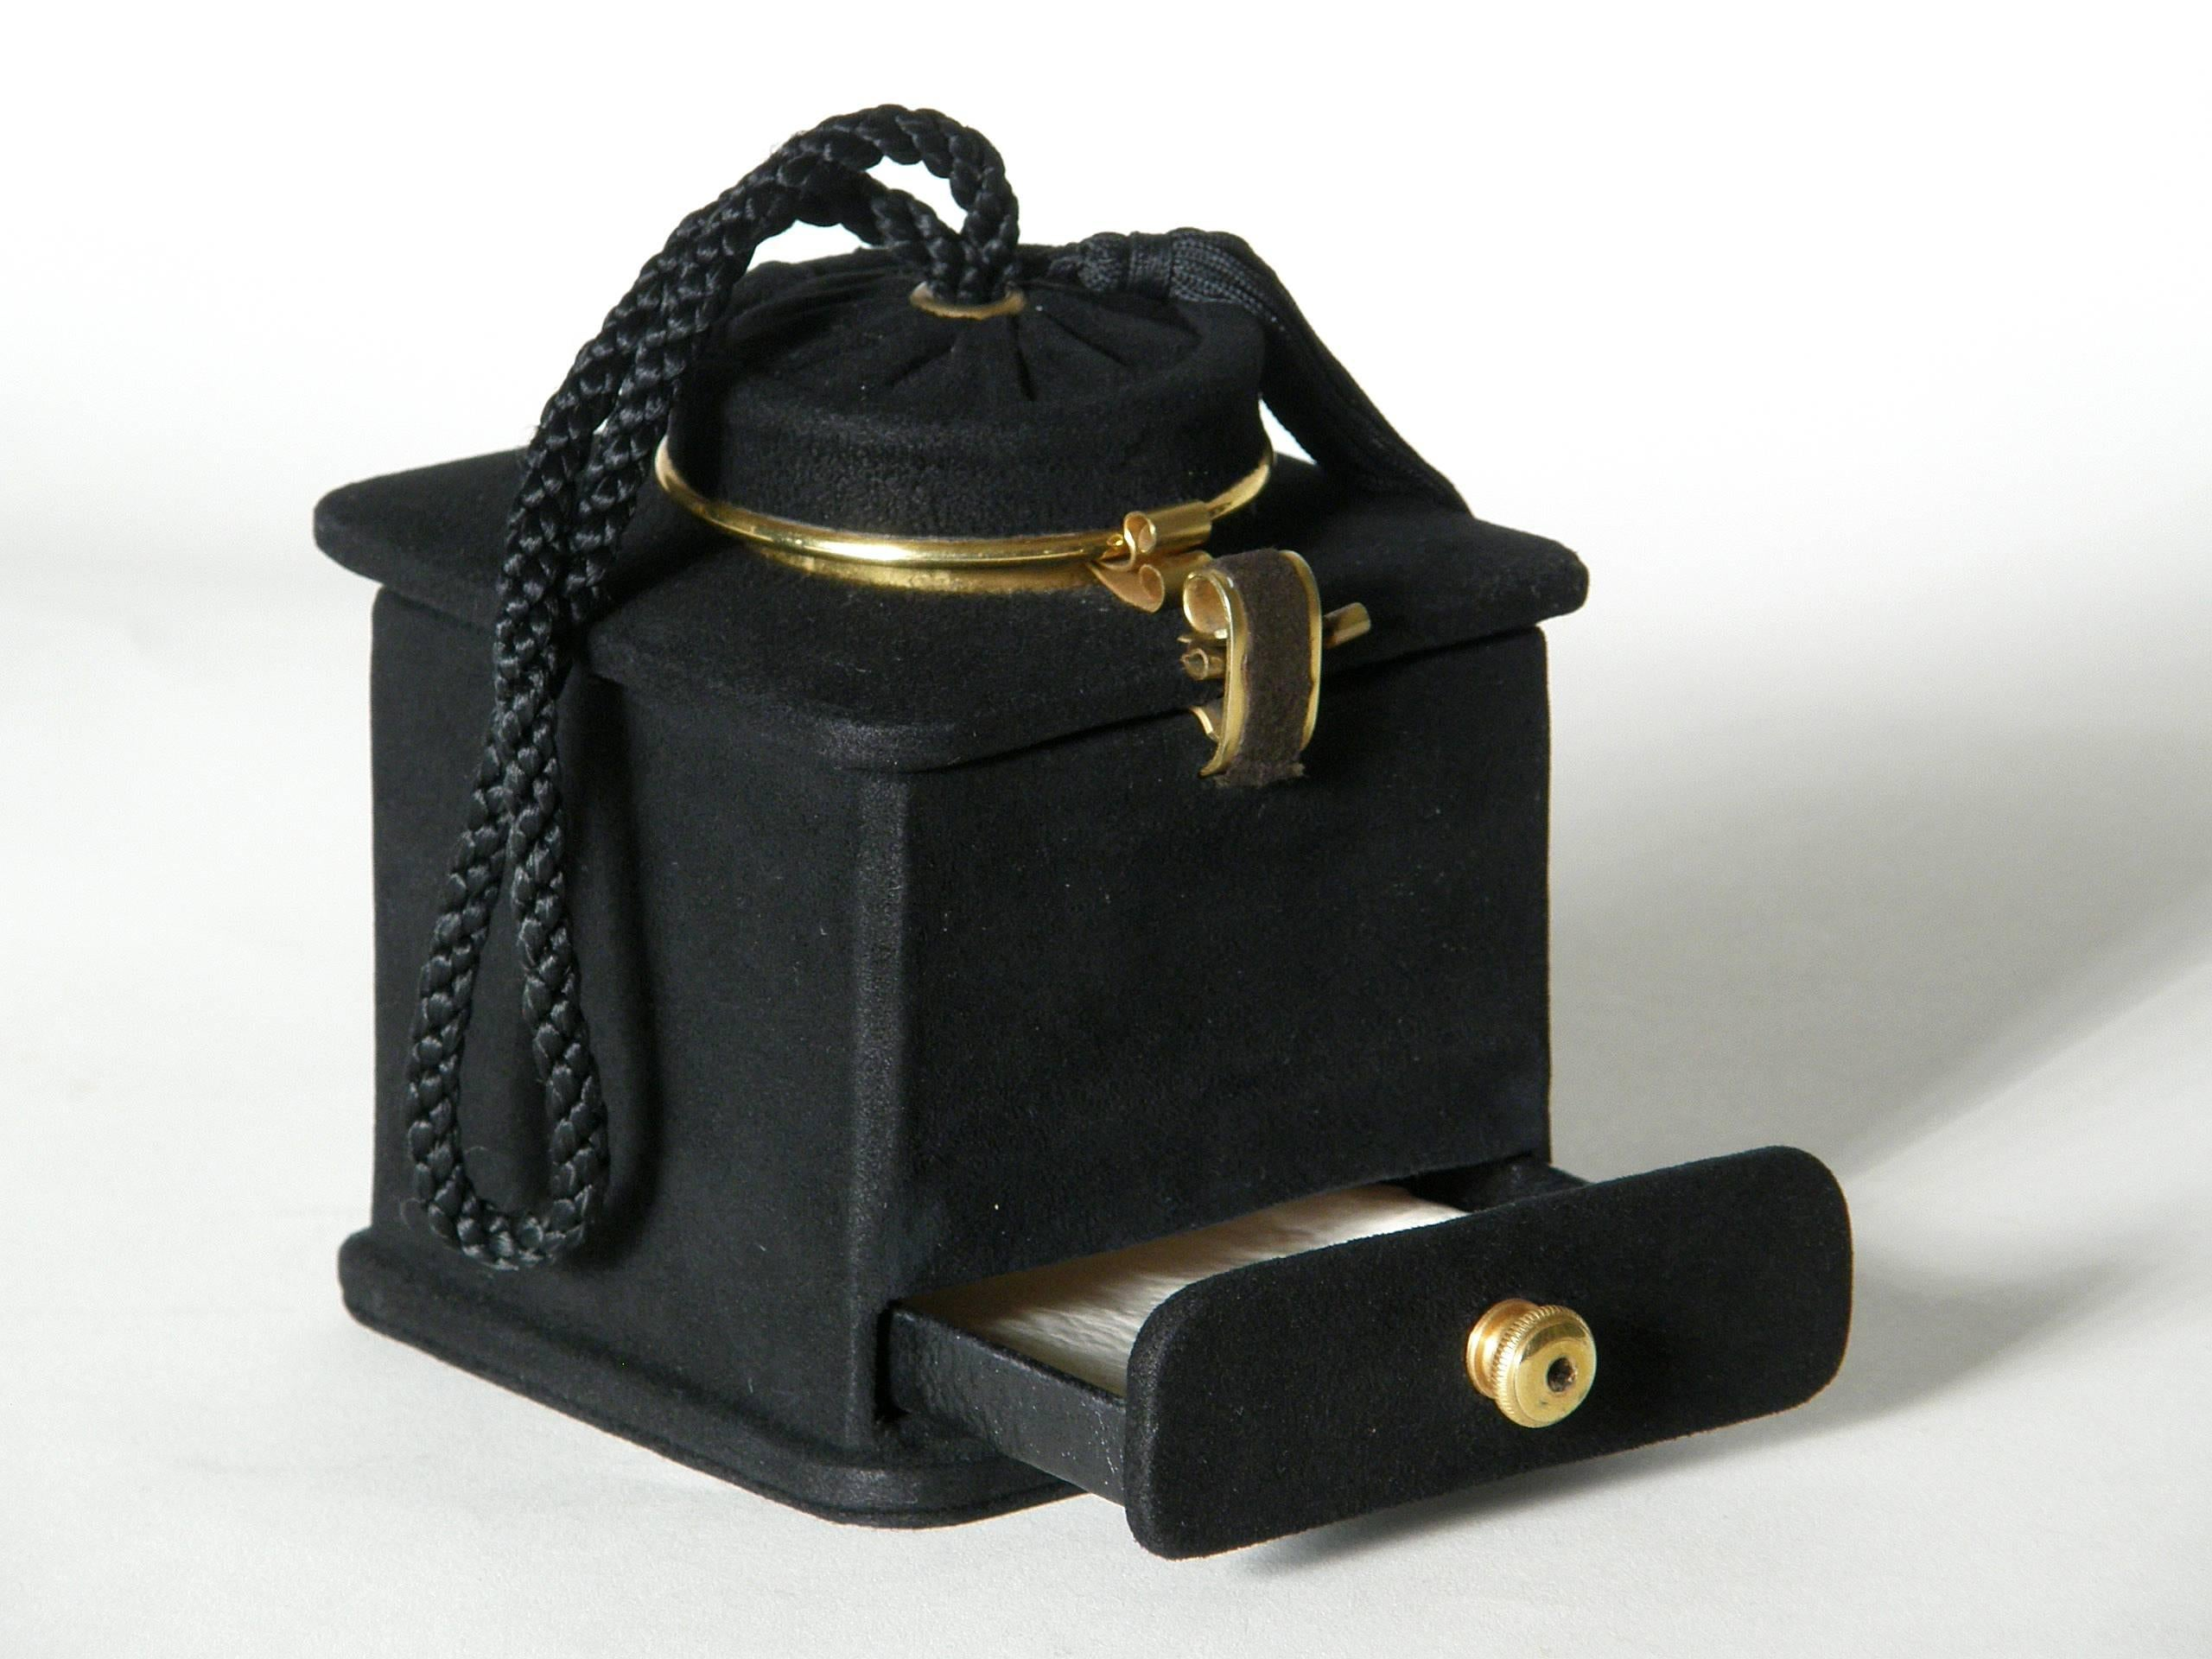 1stdibs Jeanne Bernard Of Paris Black Suede Coffee Grinder Shaped Handbag a9qfjOy1v